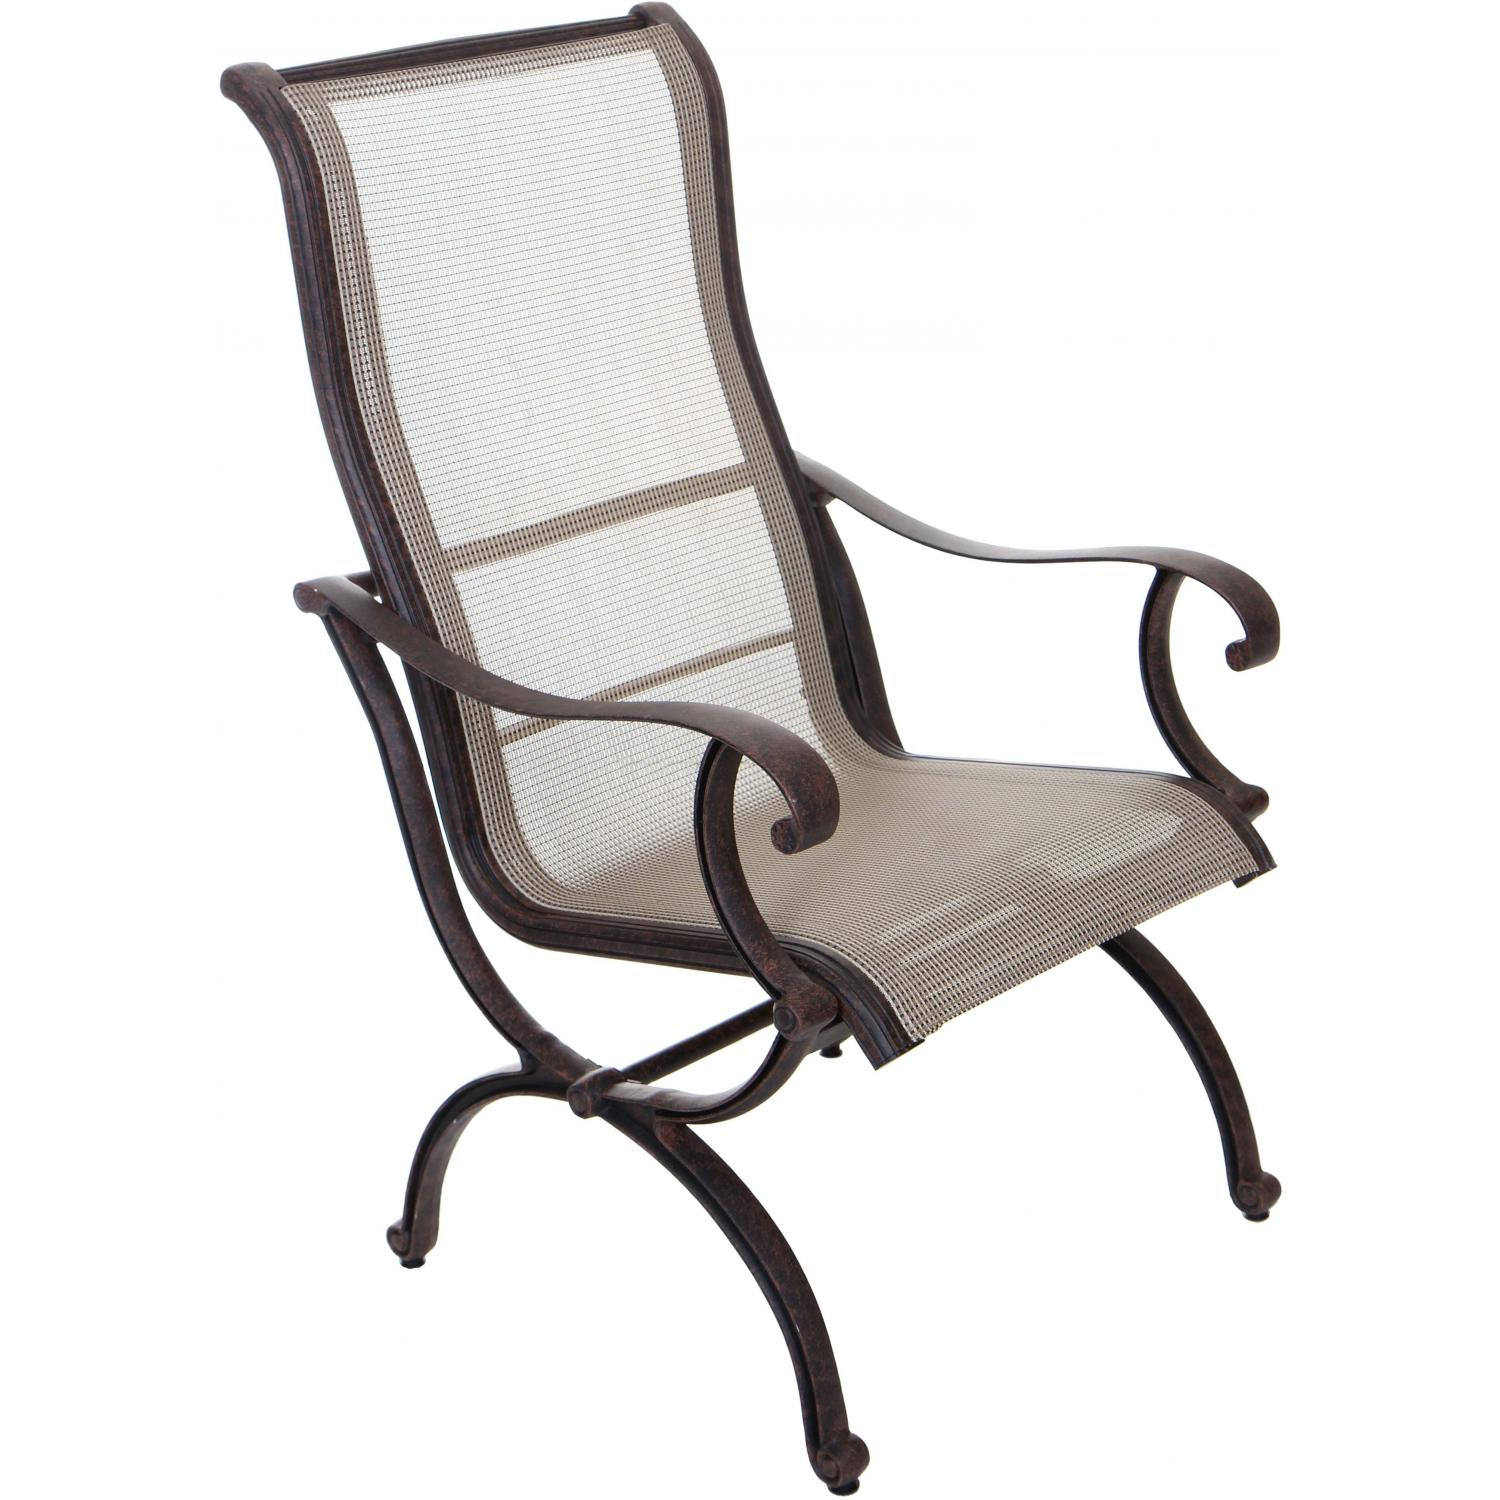 Lombardy Sling Patio Dining Chair